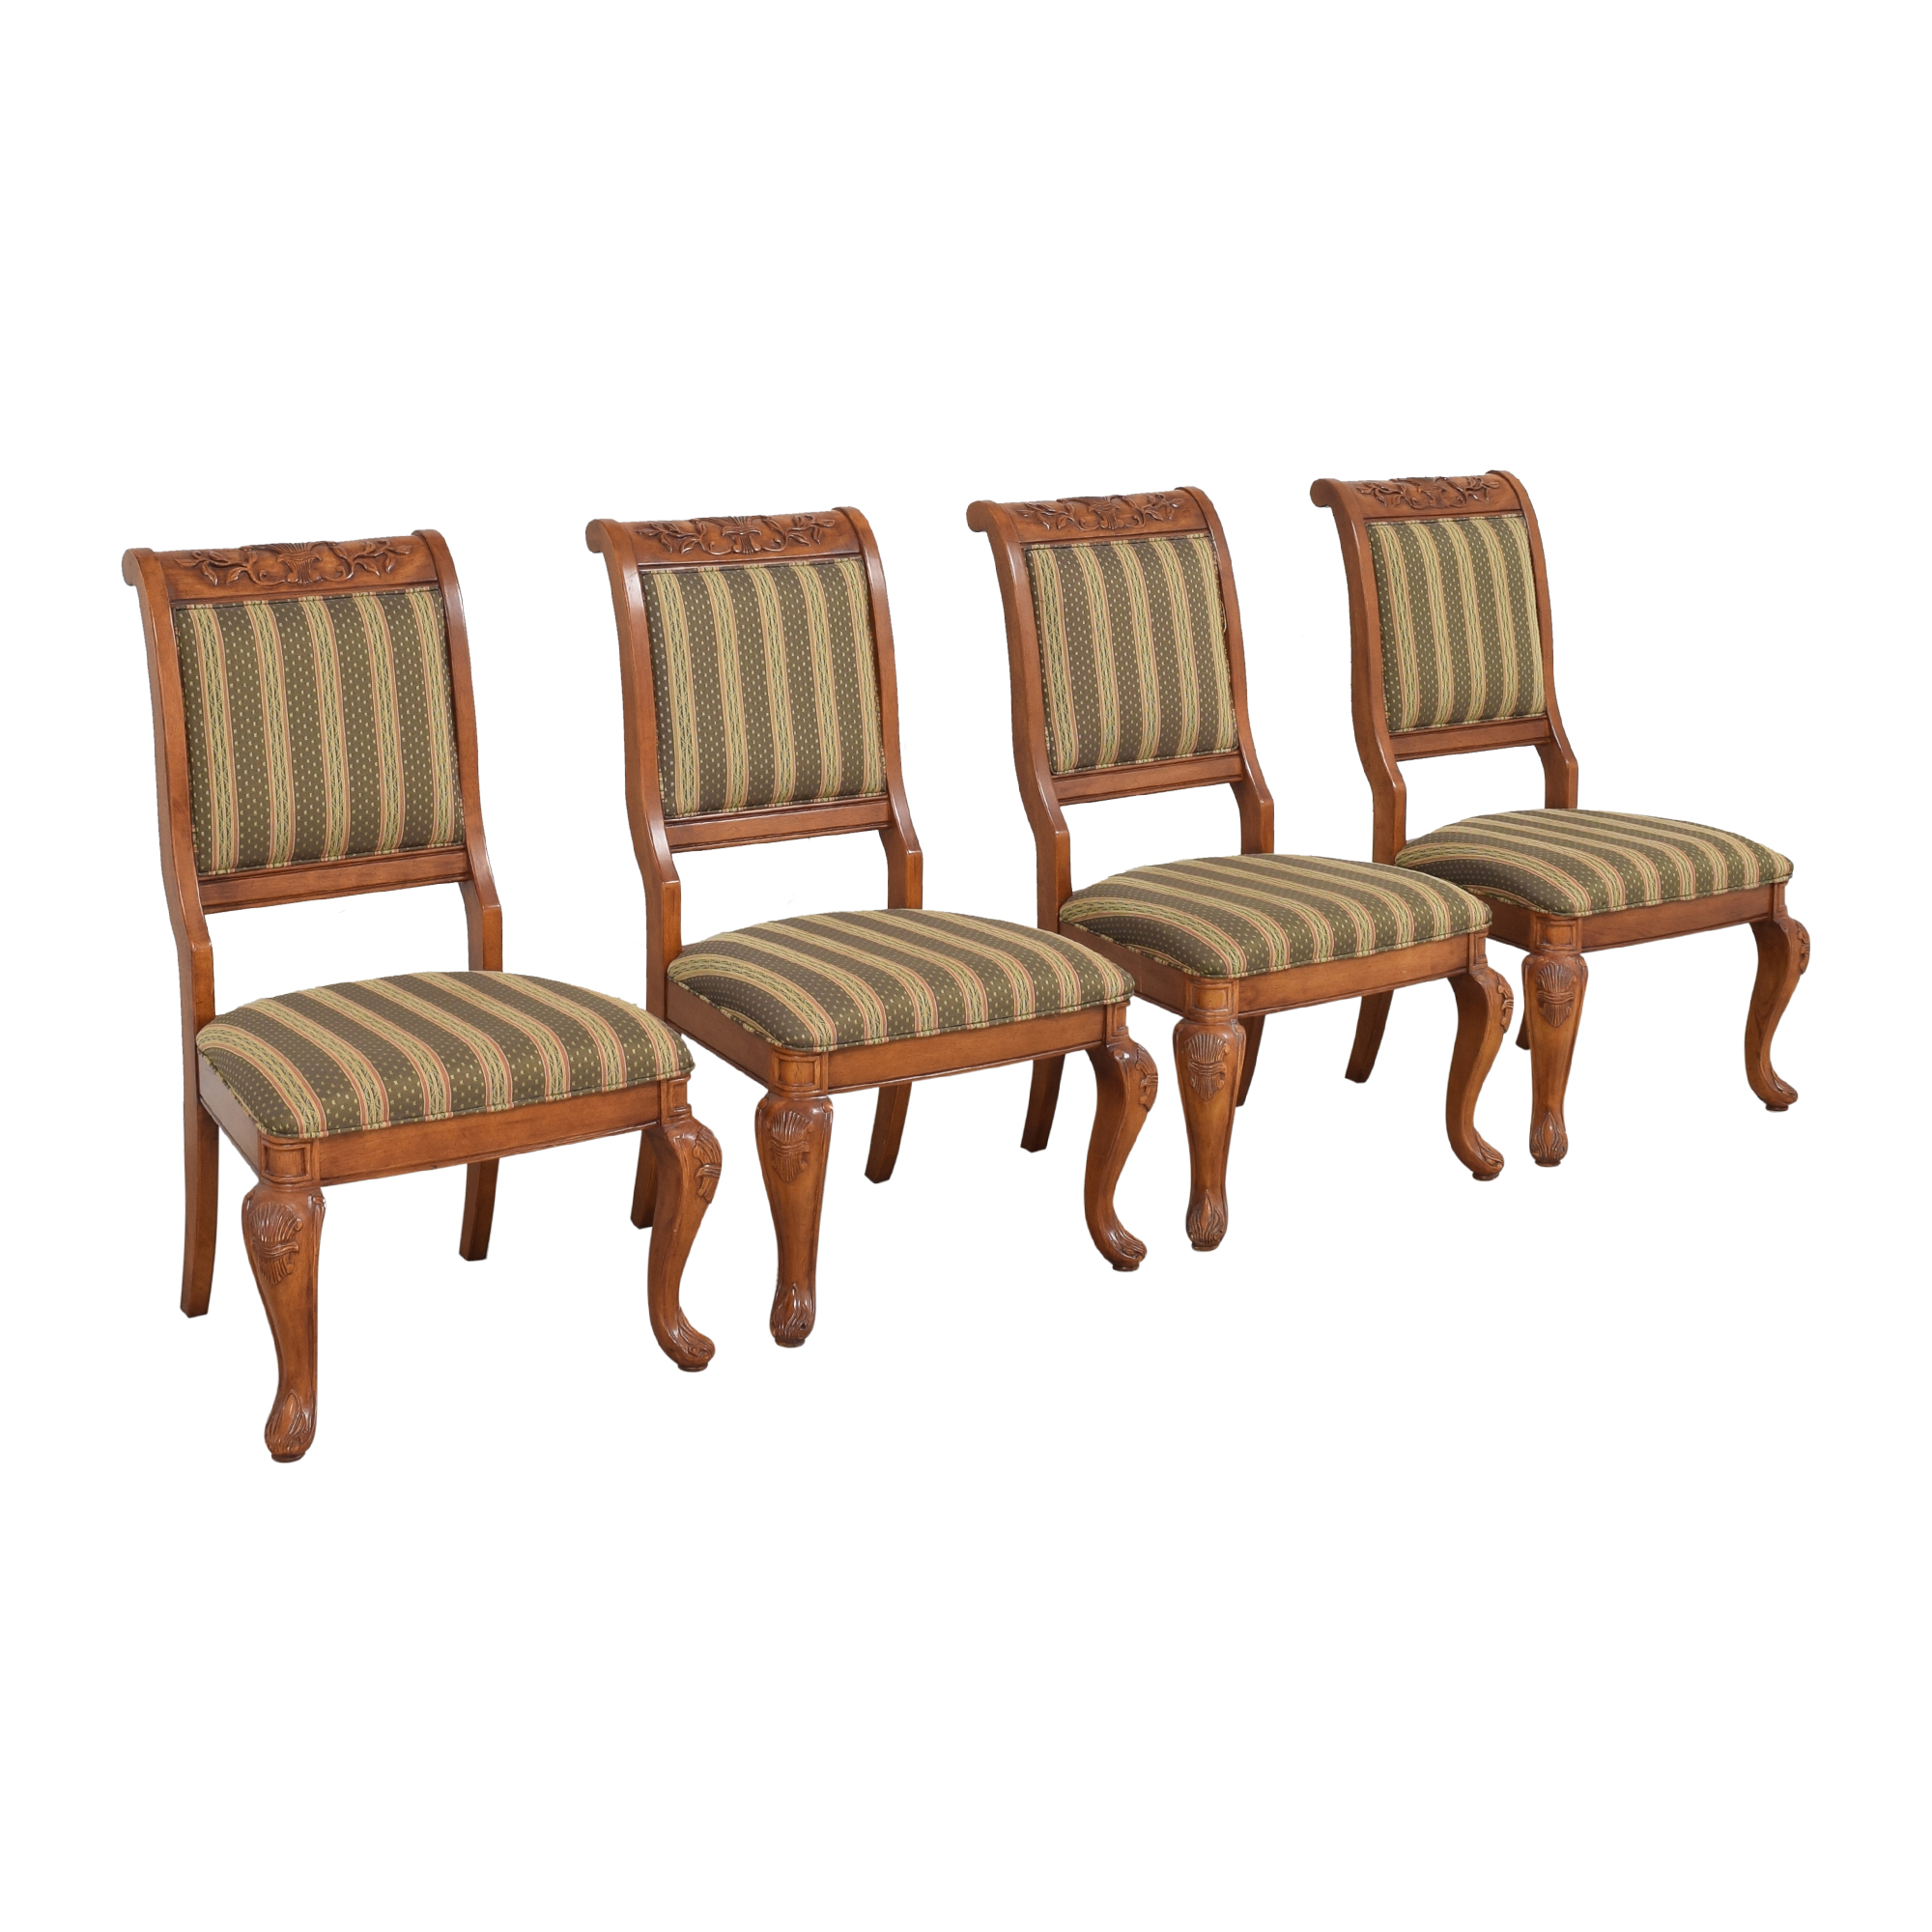 Hyundai Furniture Hyundai Stripe Dining Chairs Dinner Tables